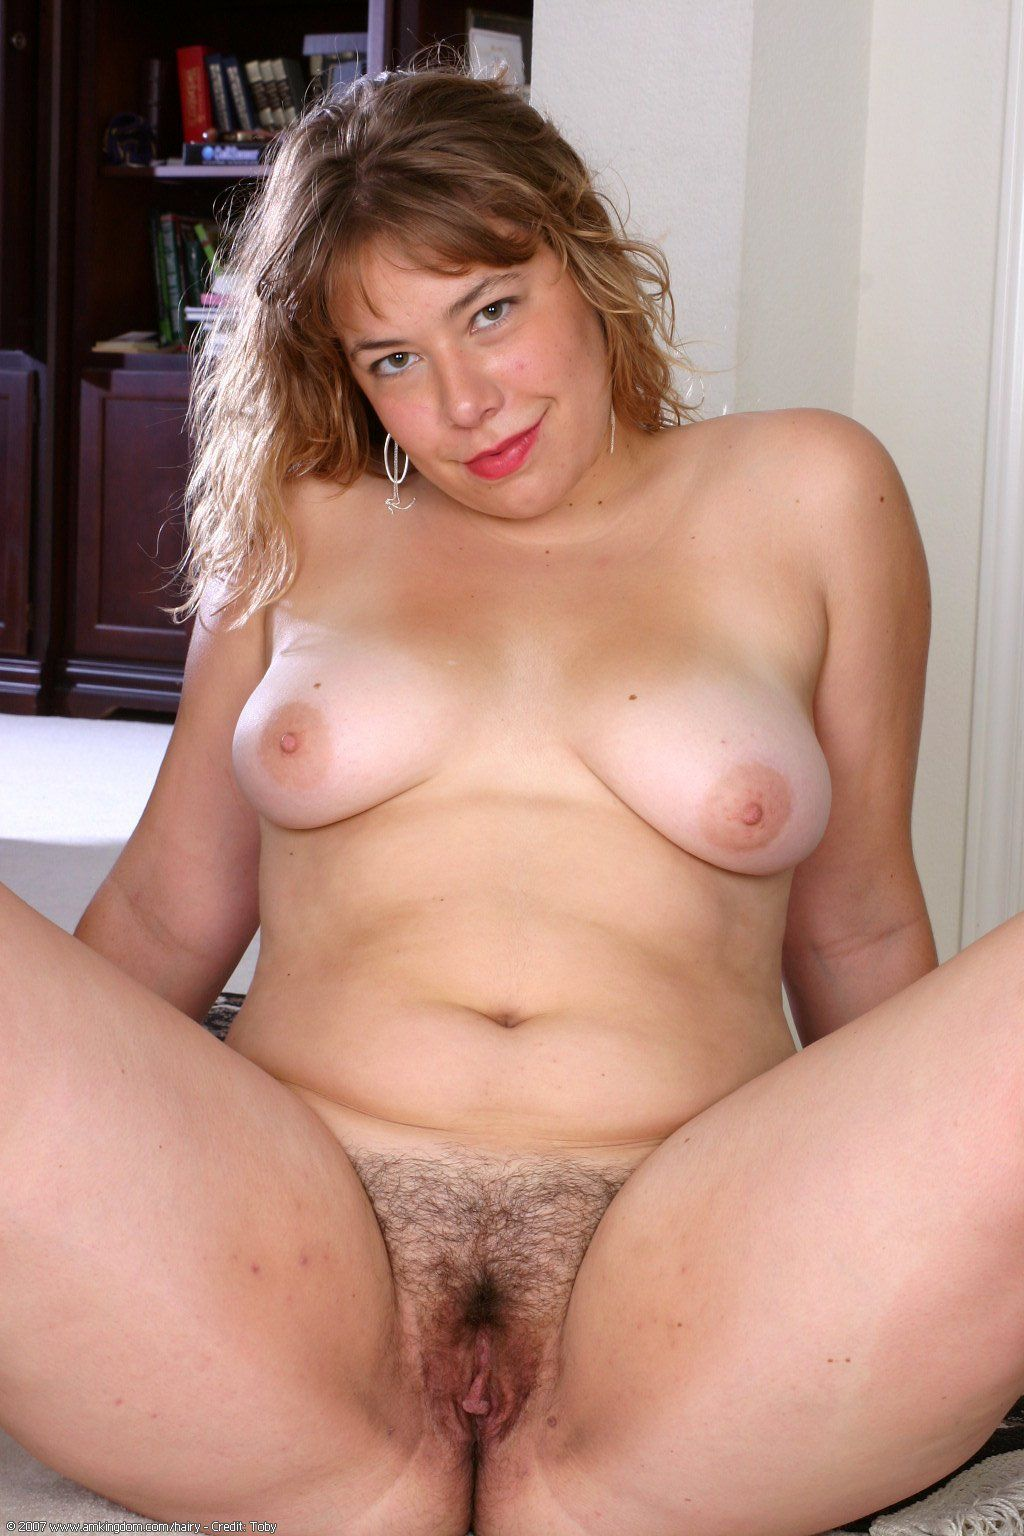 Bbw Porn Videos mature chubby plump women . porn tube. comments: 5